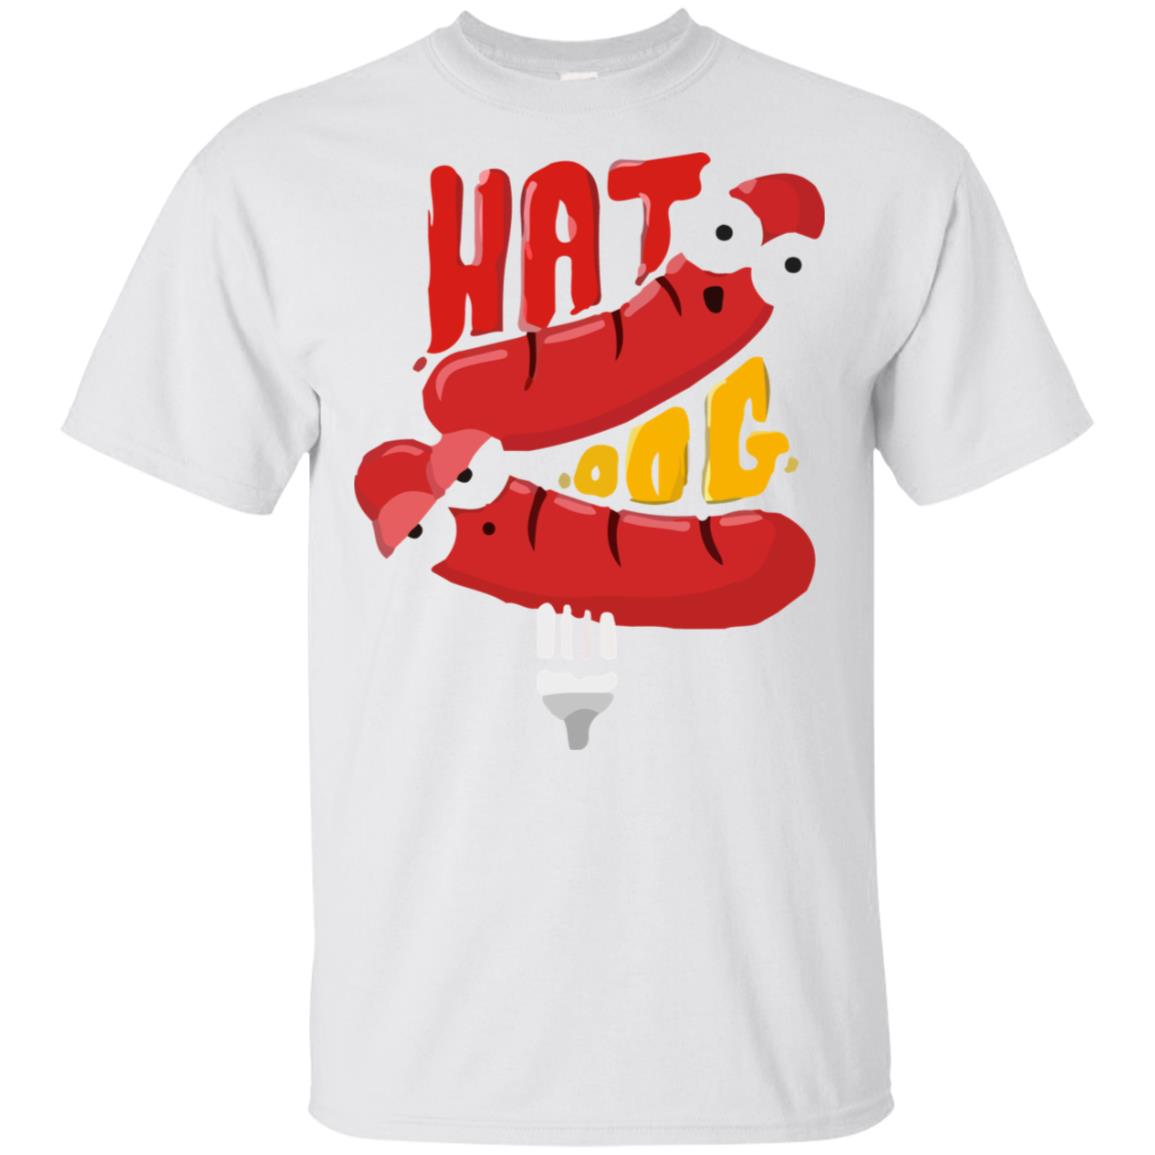 Two Hatdogs Are Better Than 1 Classic T-Shirt Tank top long sleeves